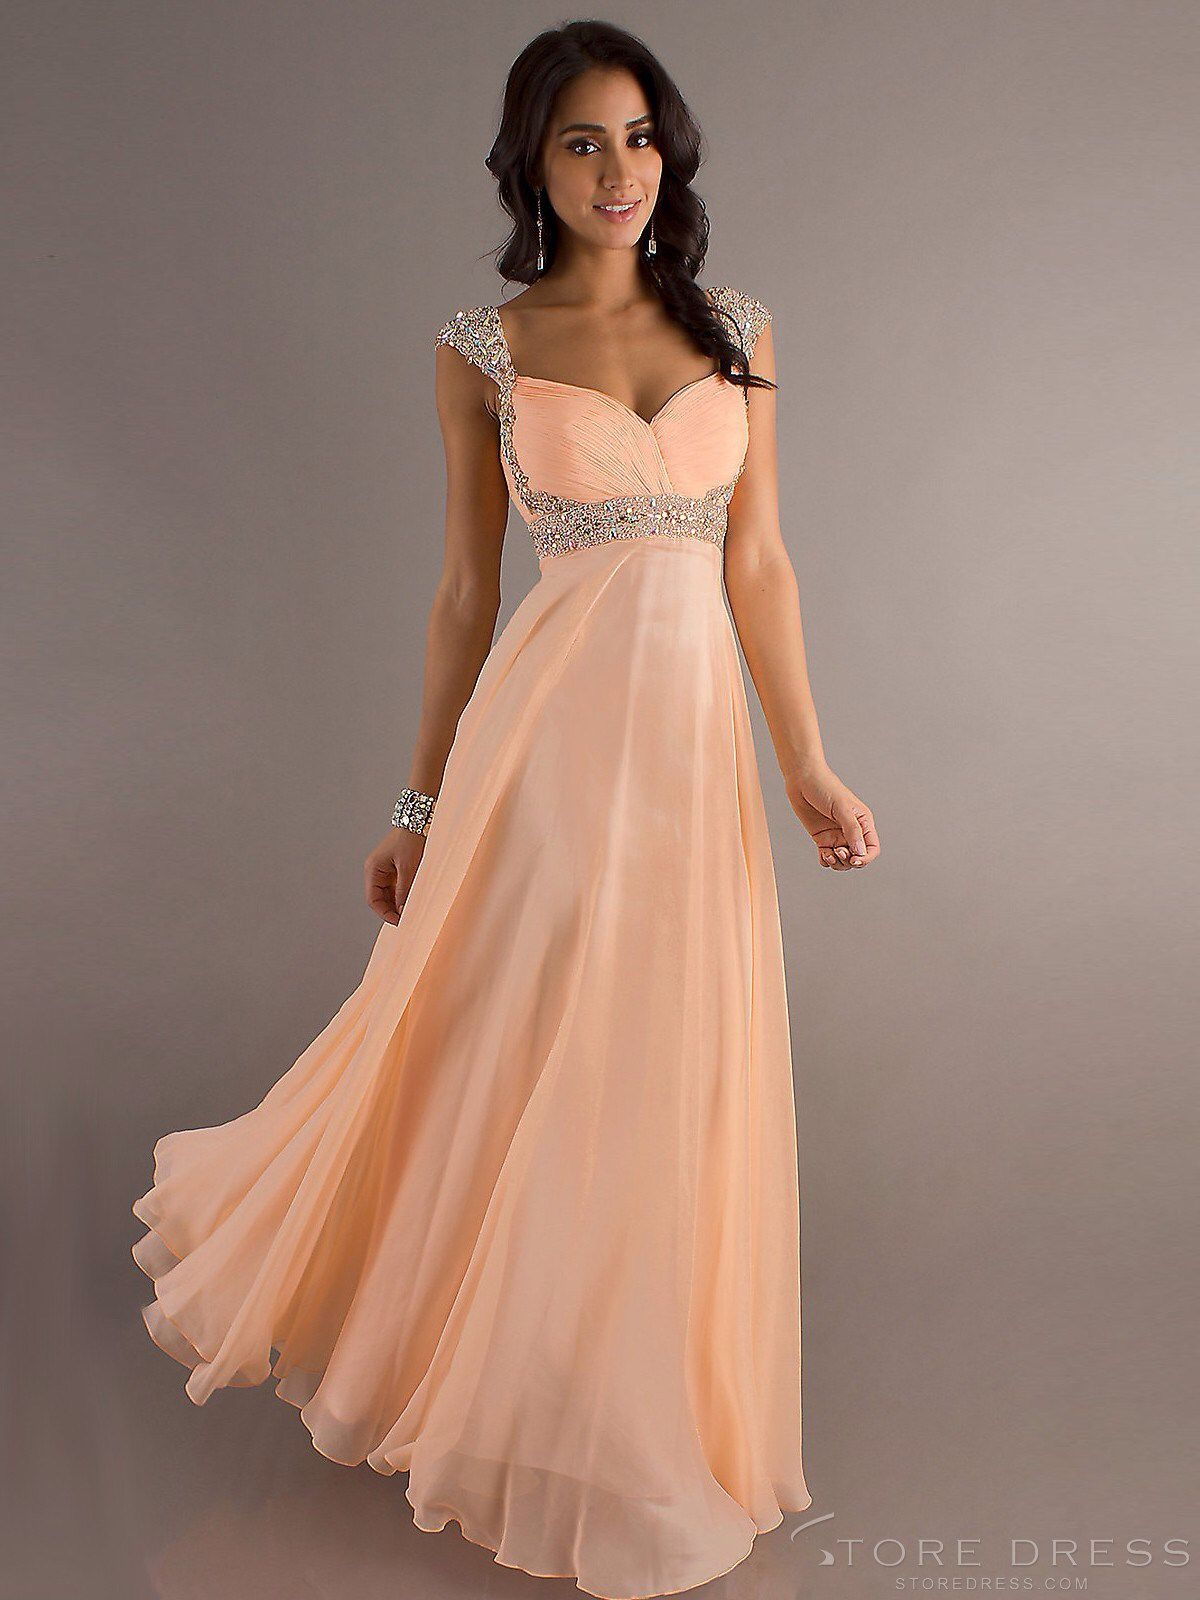 Prom dress promhomecoming dresses pinterest homecoming